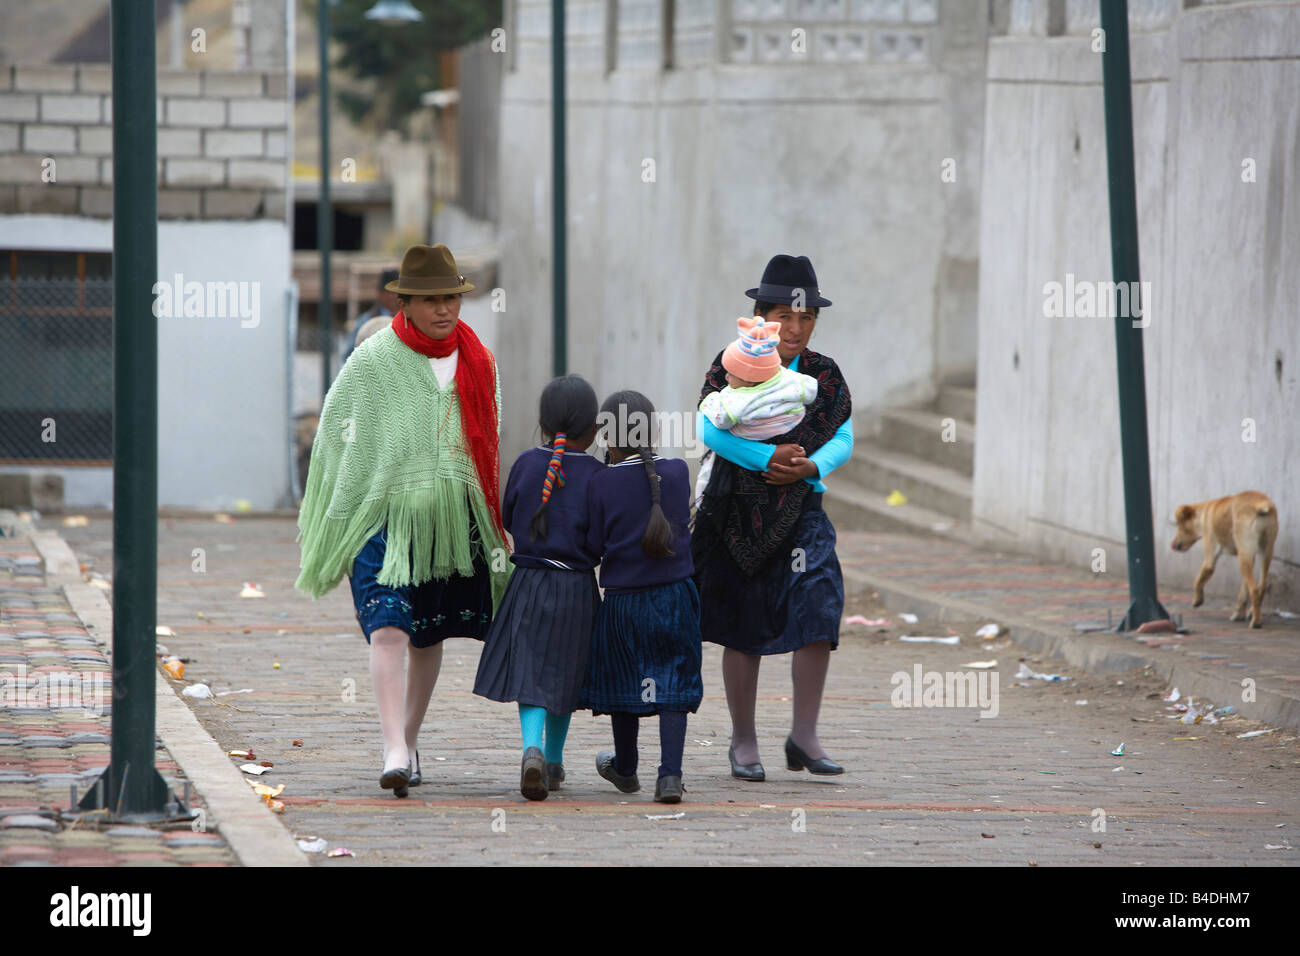 Woman and children, street scene, Otavalo, Ecuador - Stock Image